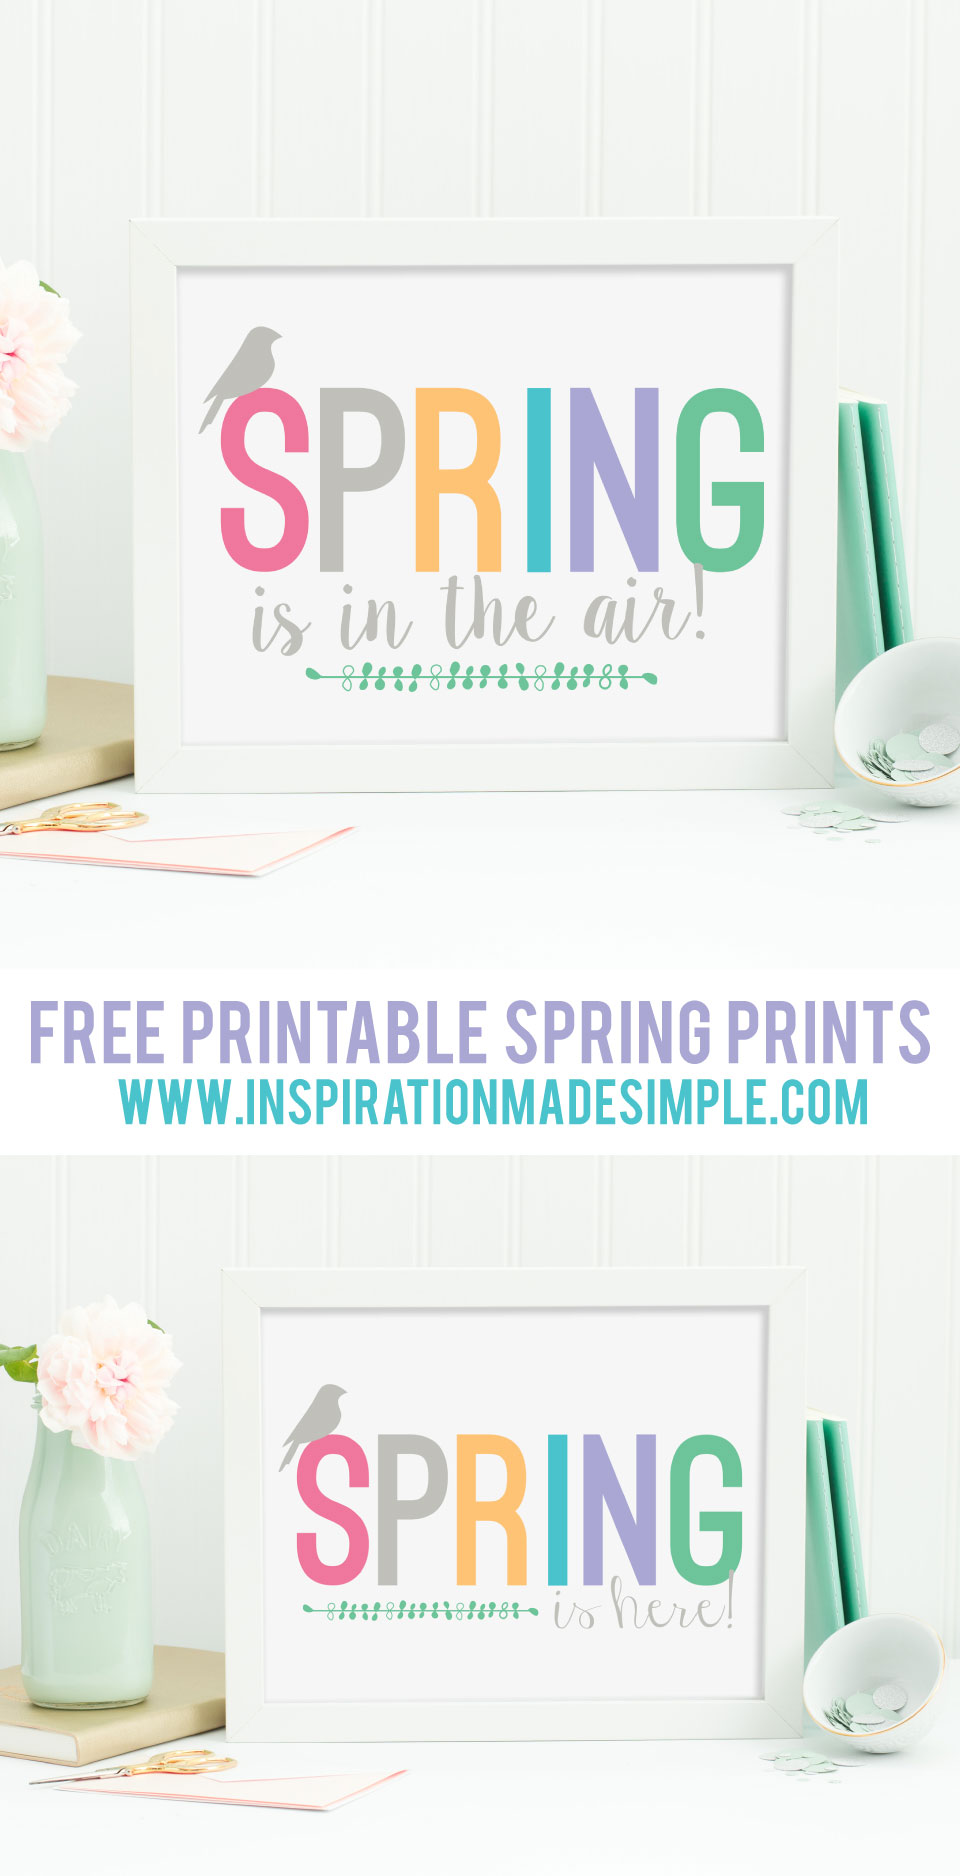 Free Printable Spring Print - two versions available!